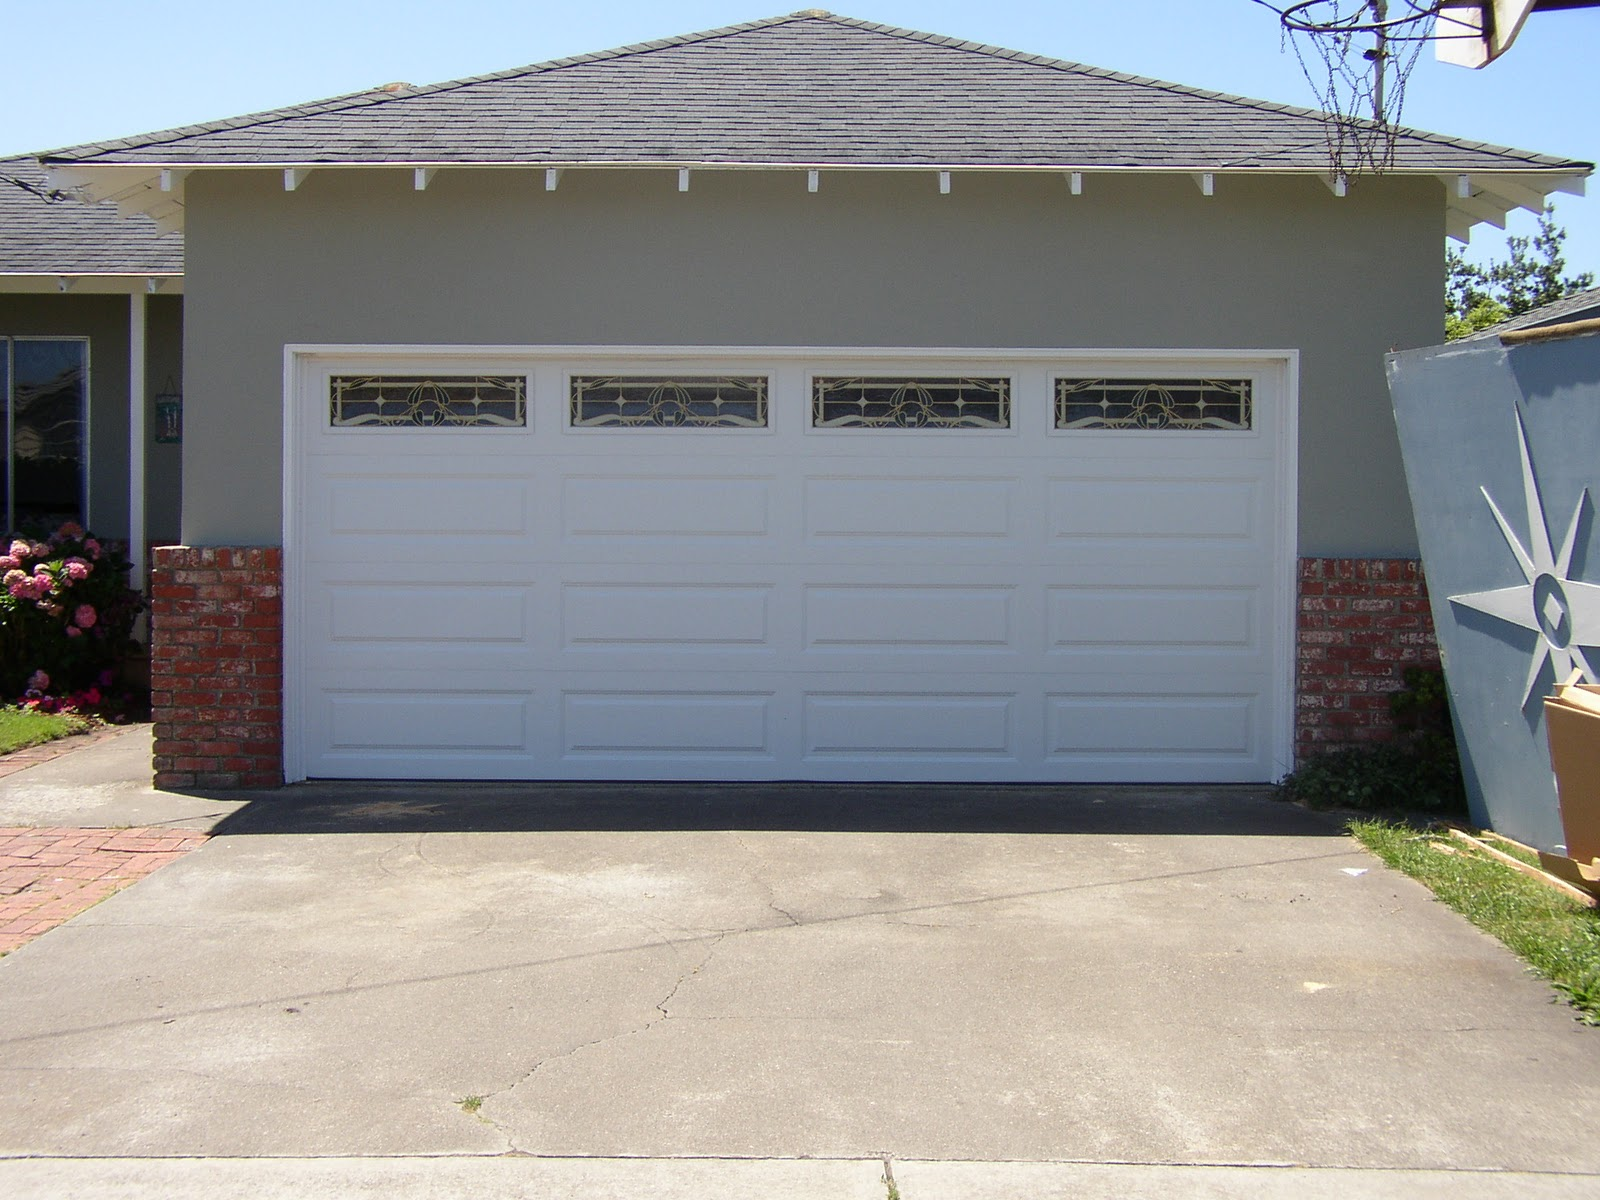 Tucker Garage Door Repair, 3469 Lawrenceville Hwy, Tucker, GA 30084, Phone:  404 566 5285, Contact Person: Vince,